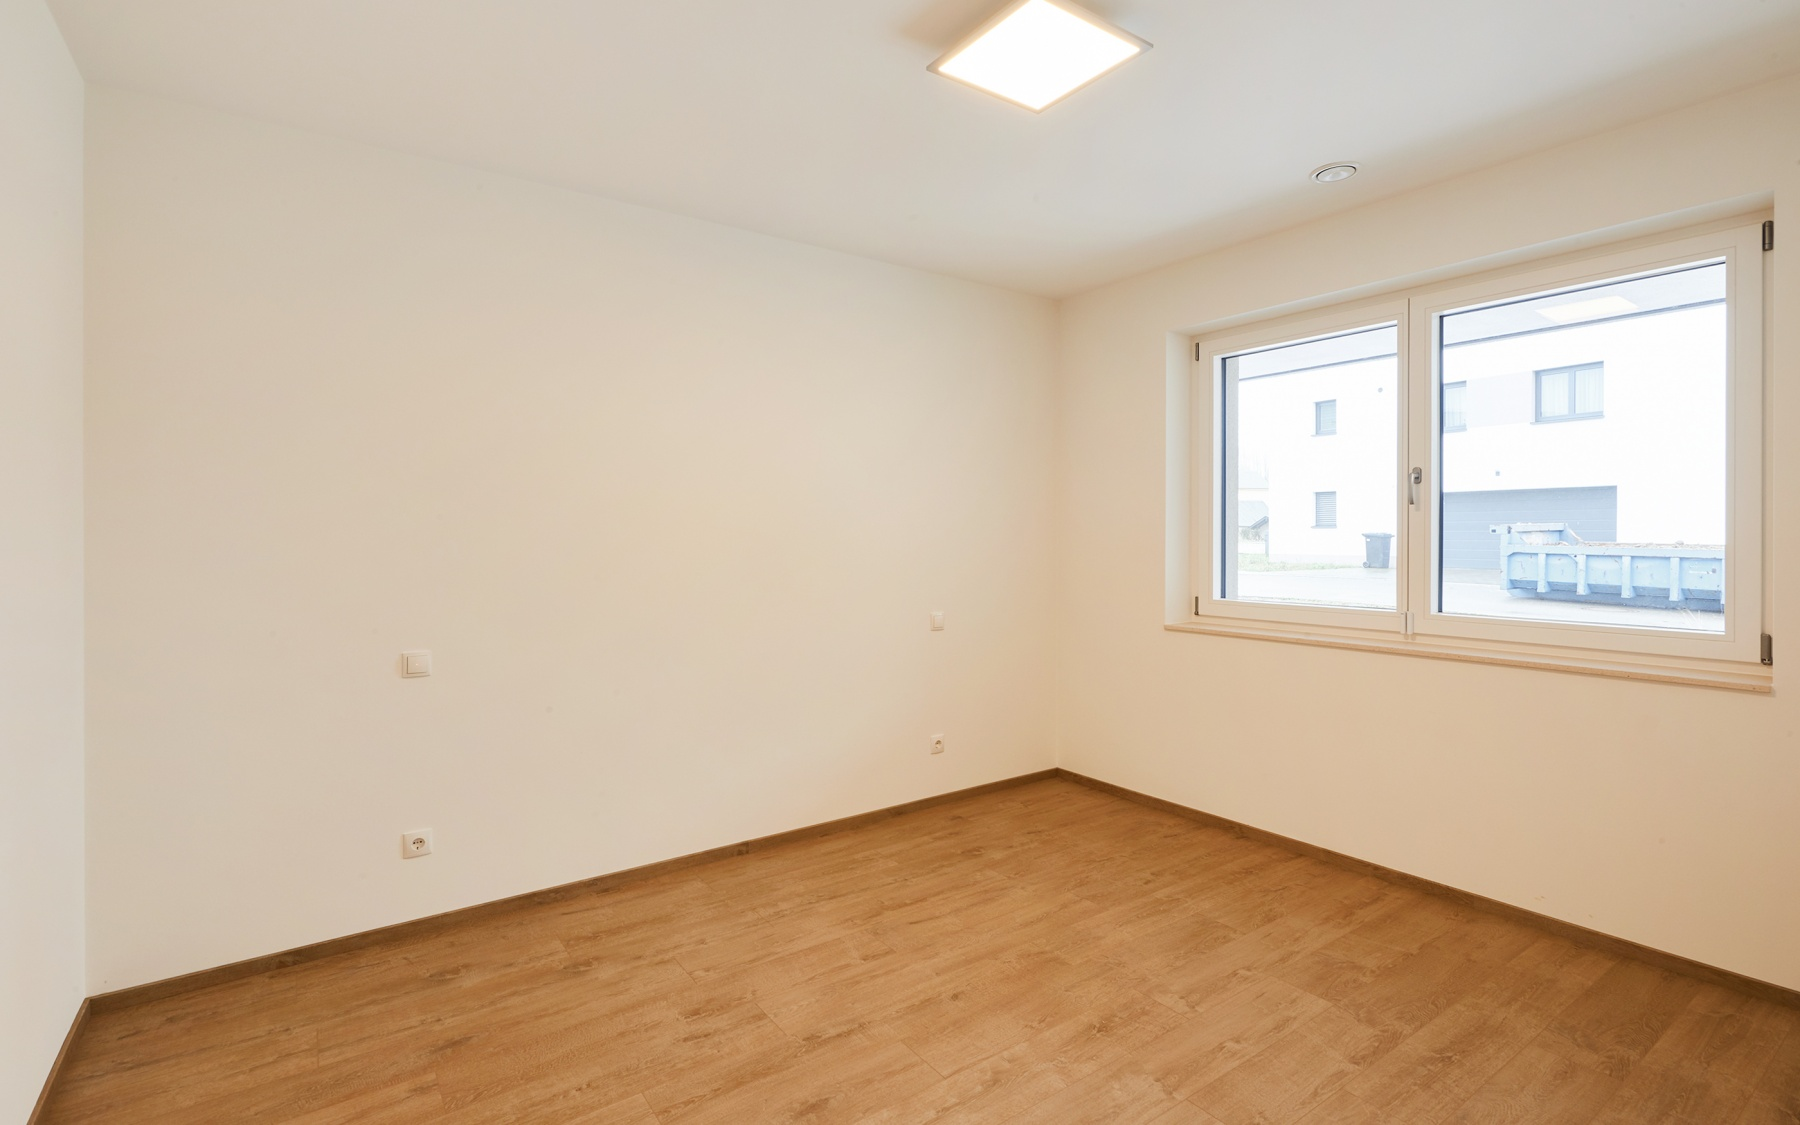 Appartement à Capellen